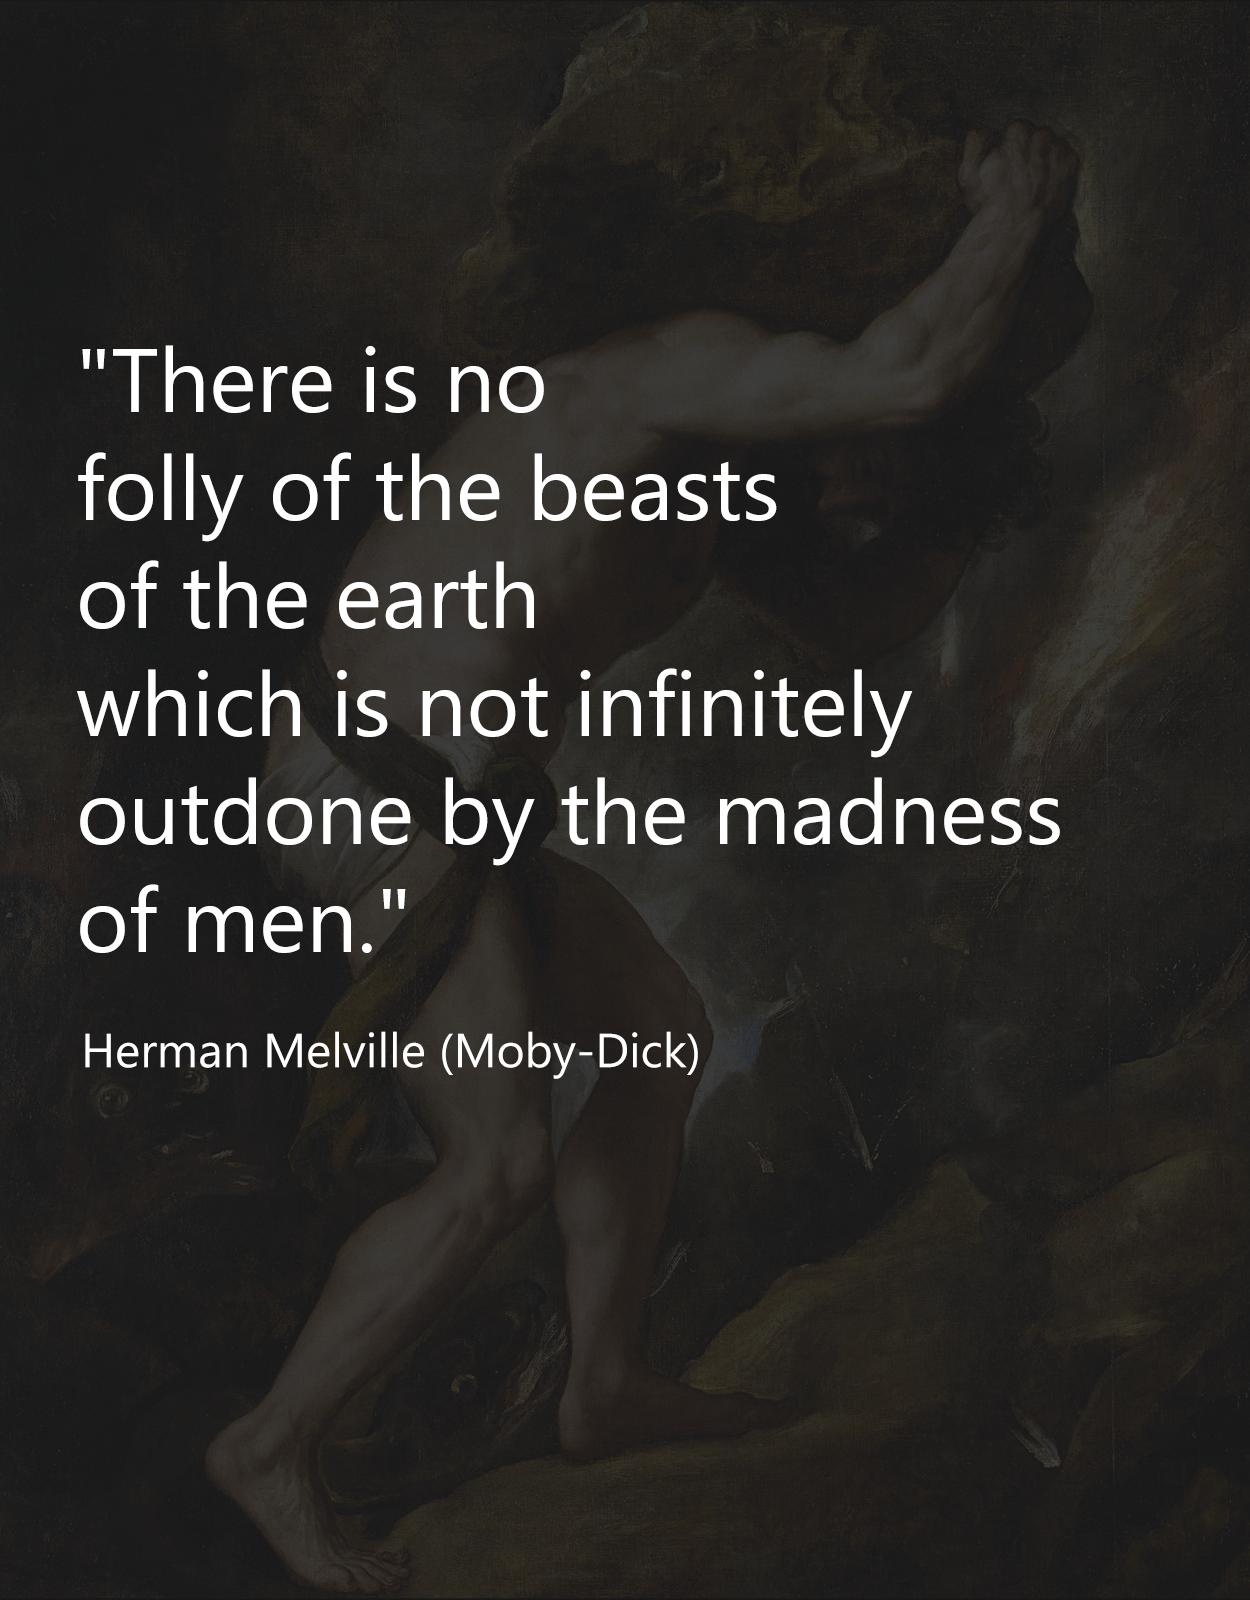 """There is no folly of the beasts of the earth which is not infinitely outdone by the madness of men."" – Herman Melville [OS][OC][1250X1600]"